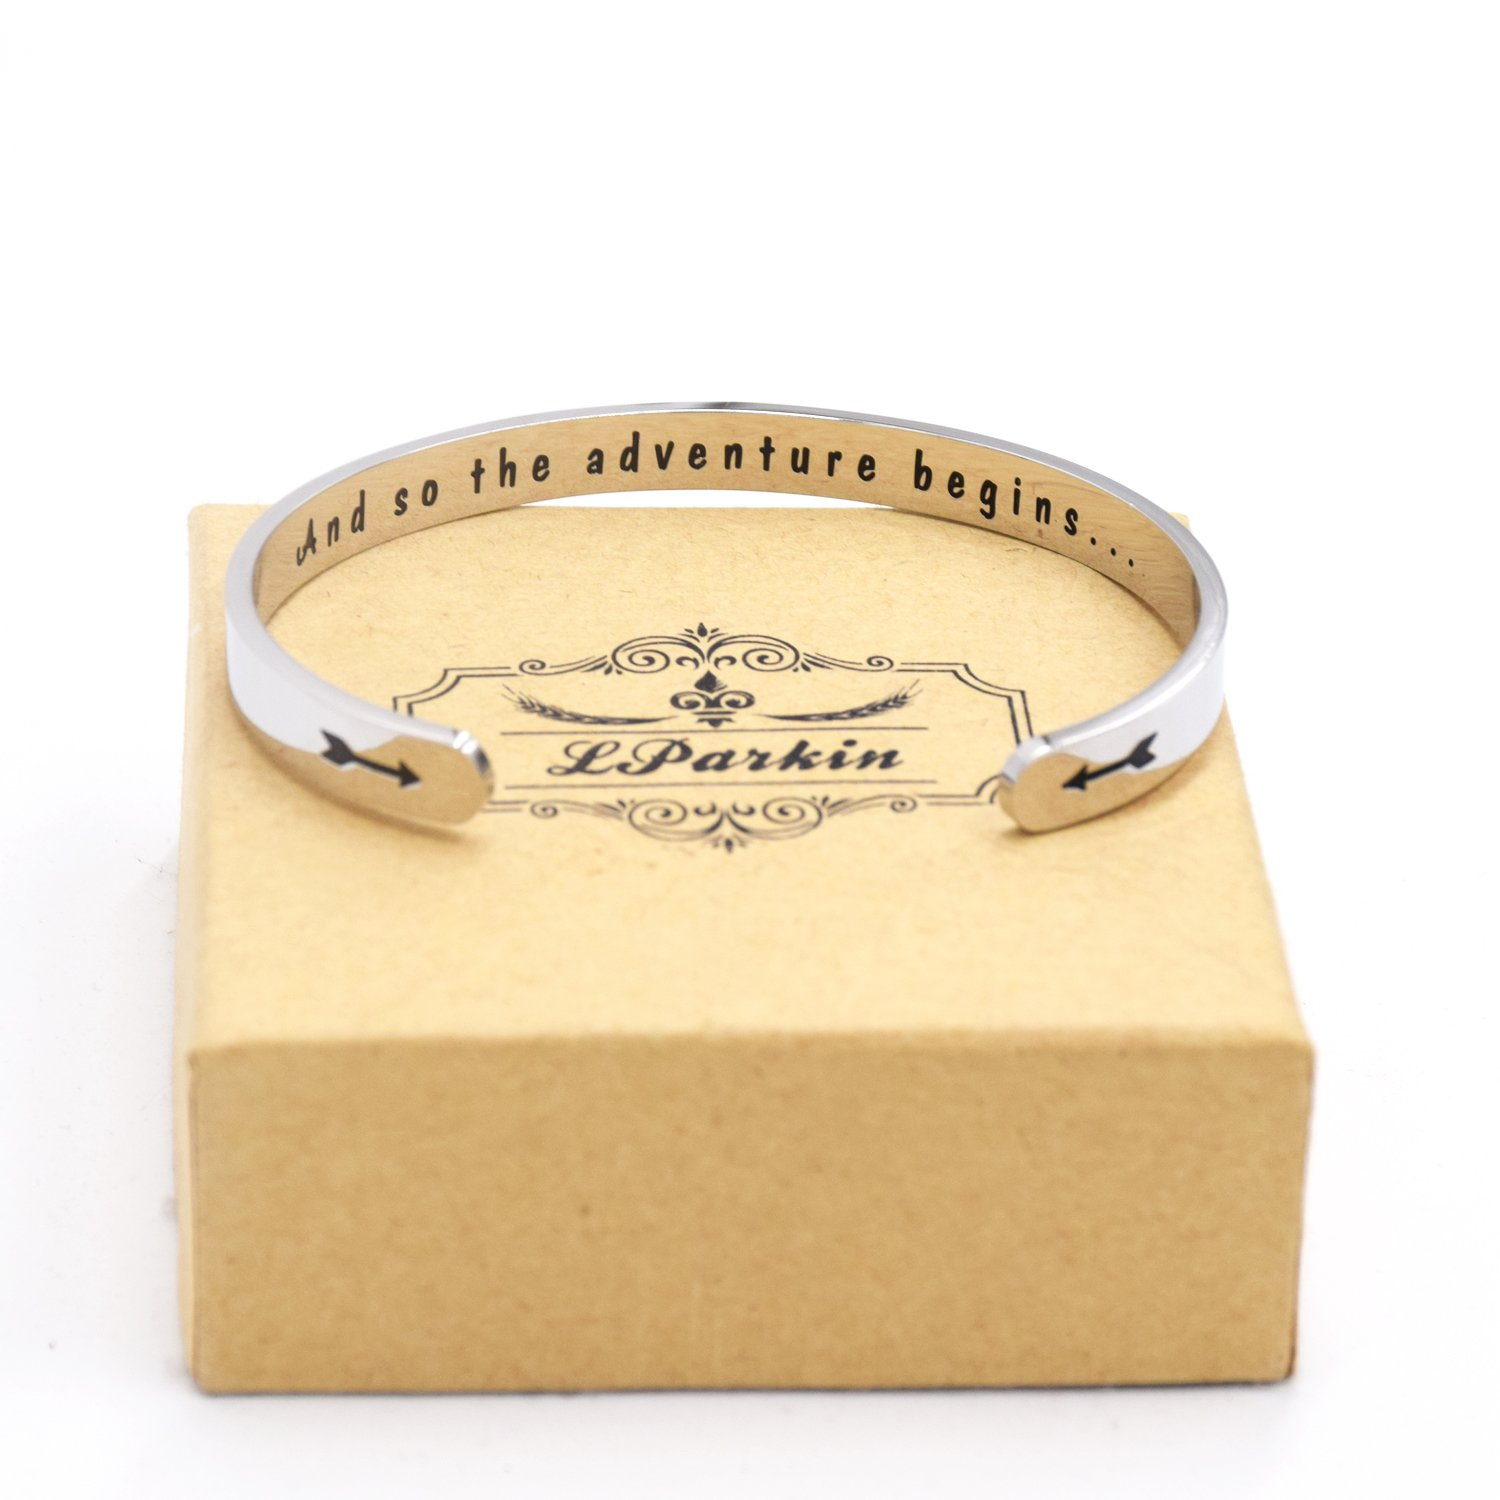 LParkin Class of 2018 2019 Gift And So the Adventure Begins Cuff Bracelet Graduation Gift (Cuff) by LParkin (Image #4)